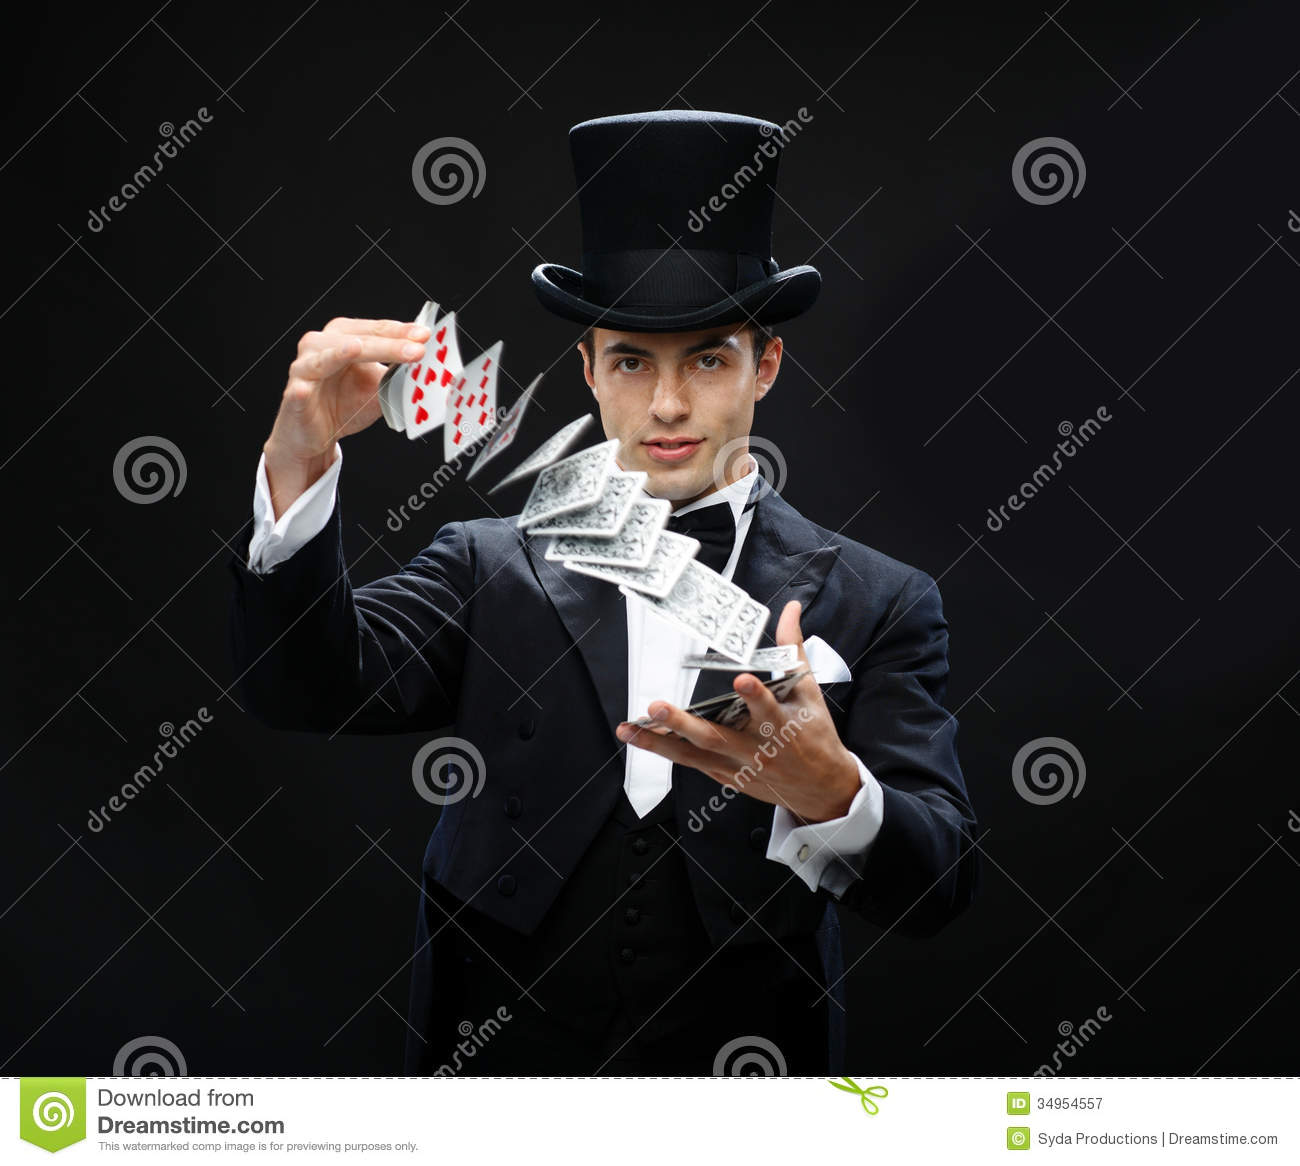 Magician Showing Trick With Playing Cards Royalty Free Stock ...